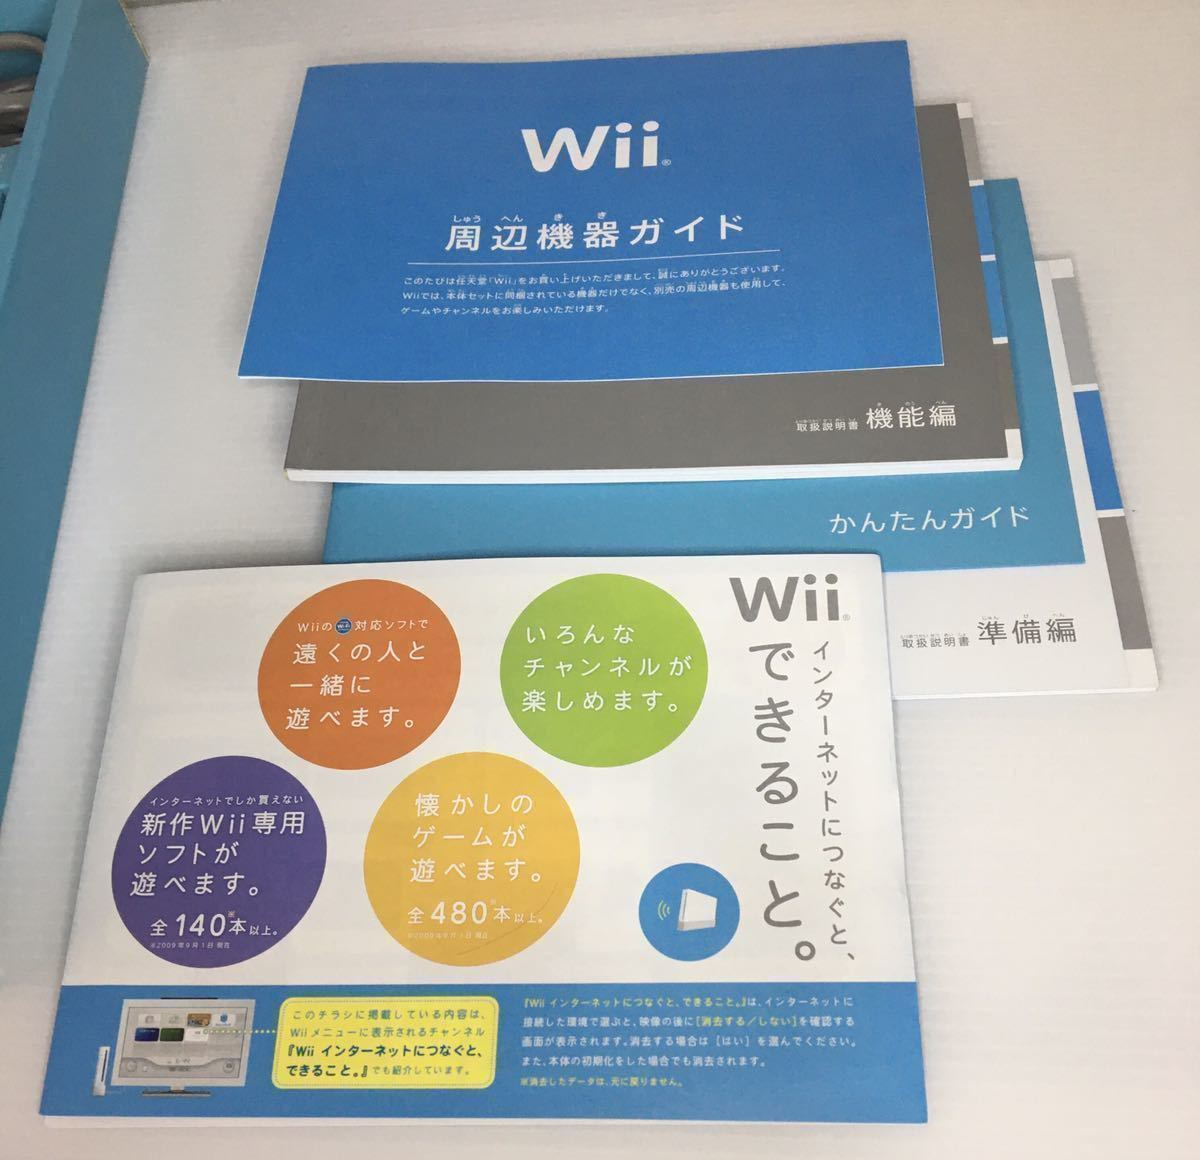 Wii 本体 fit plus マリオカート スポーツリゾート その他ソフト5本セット